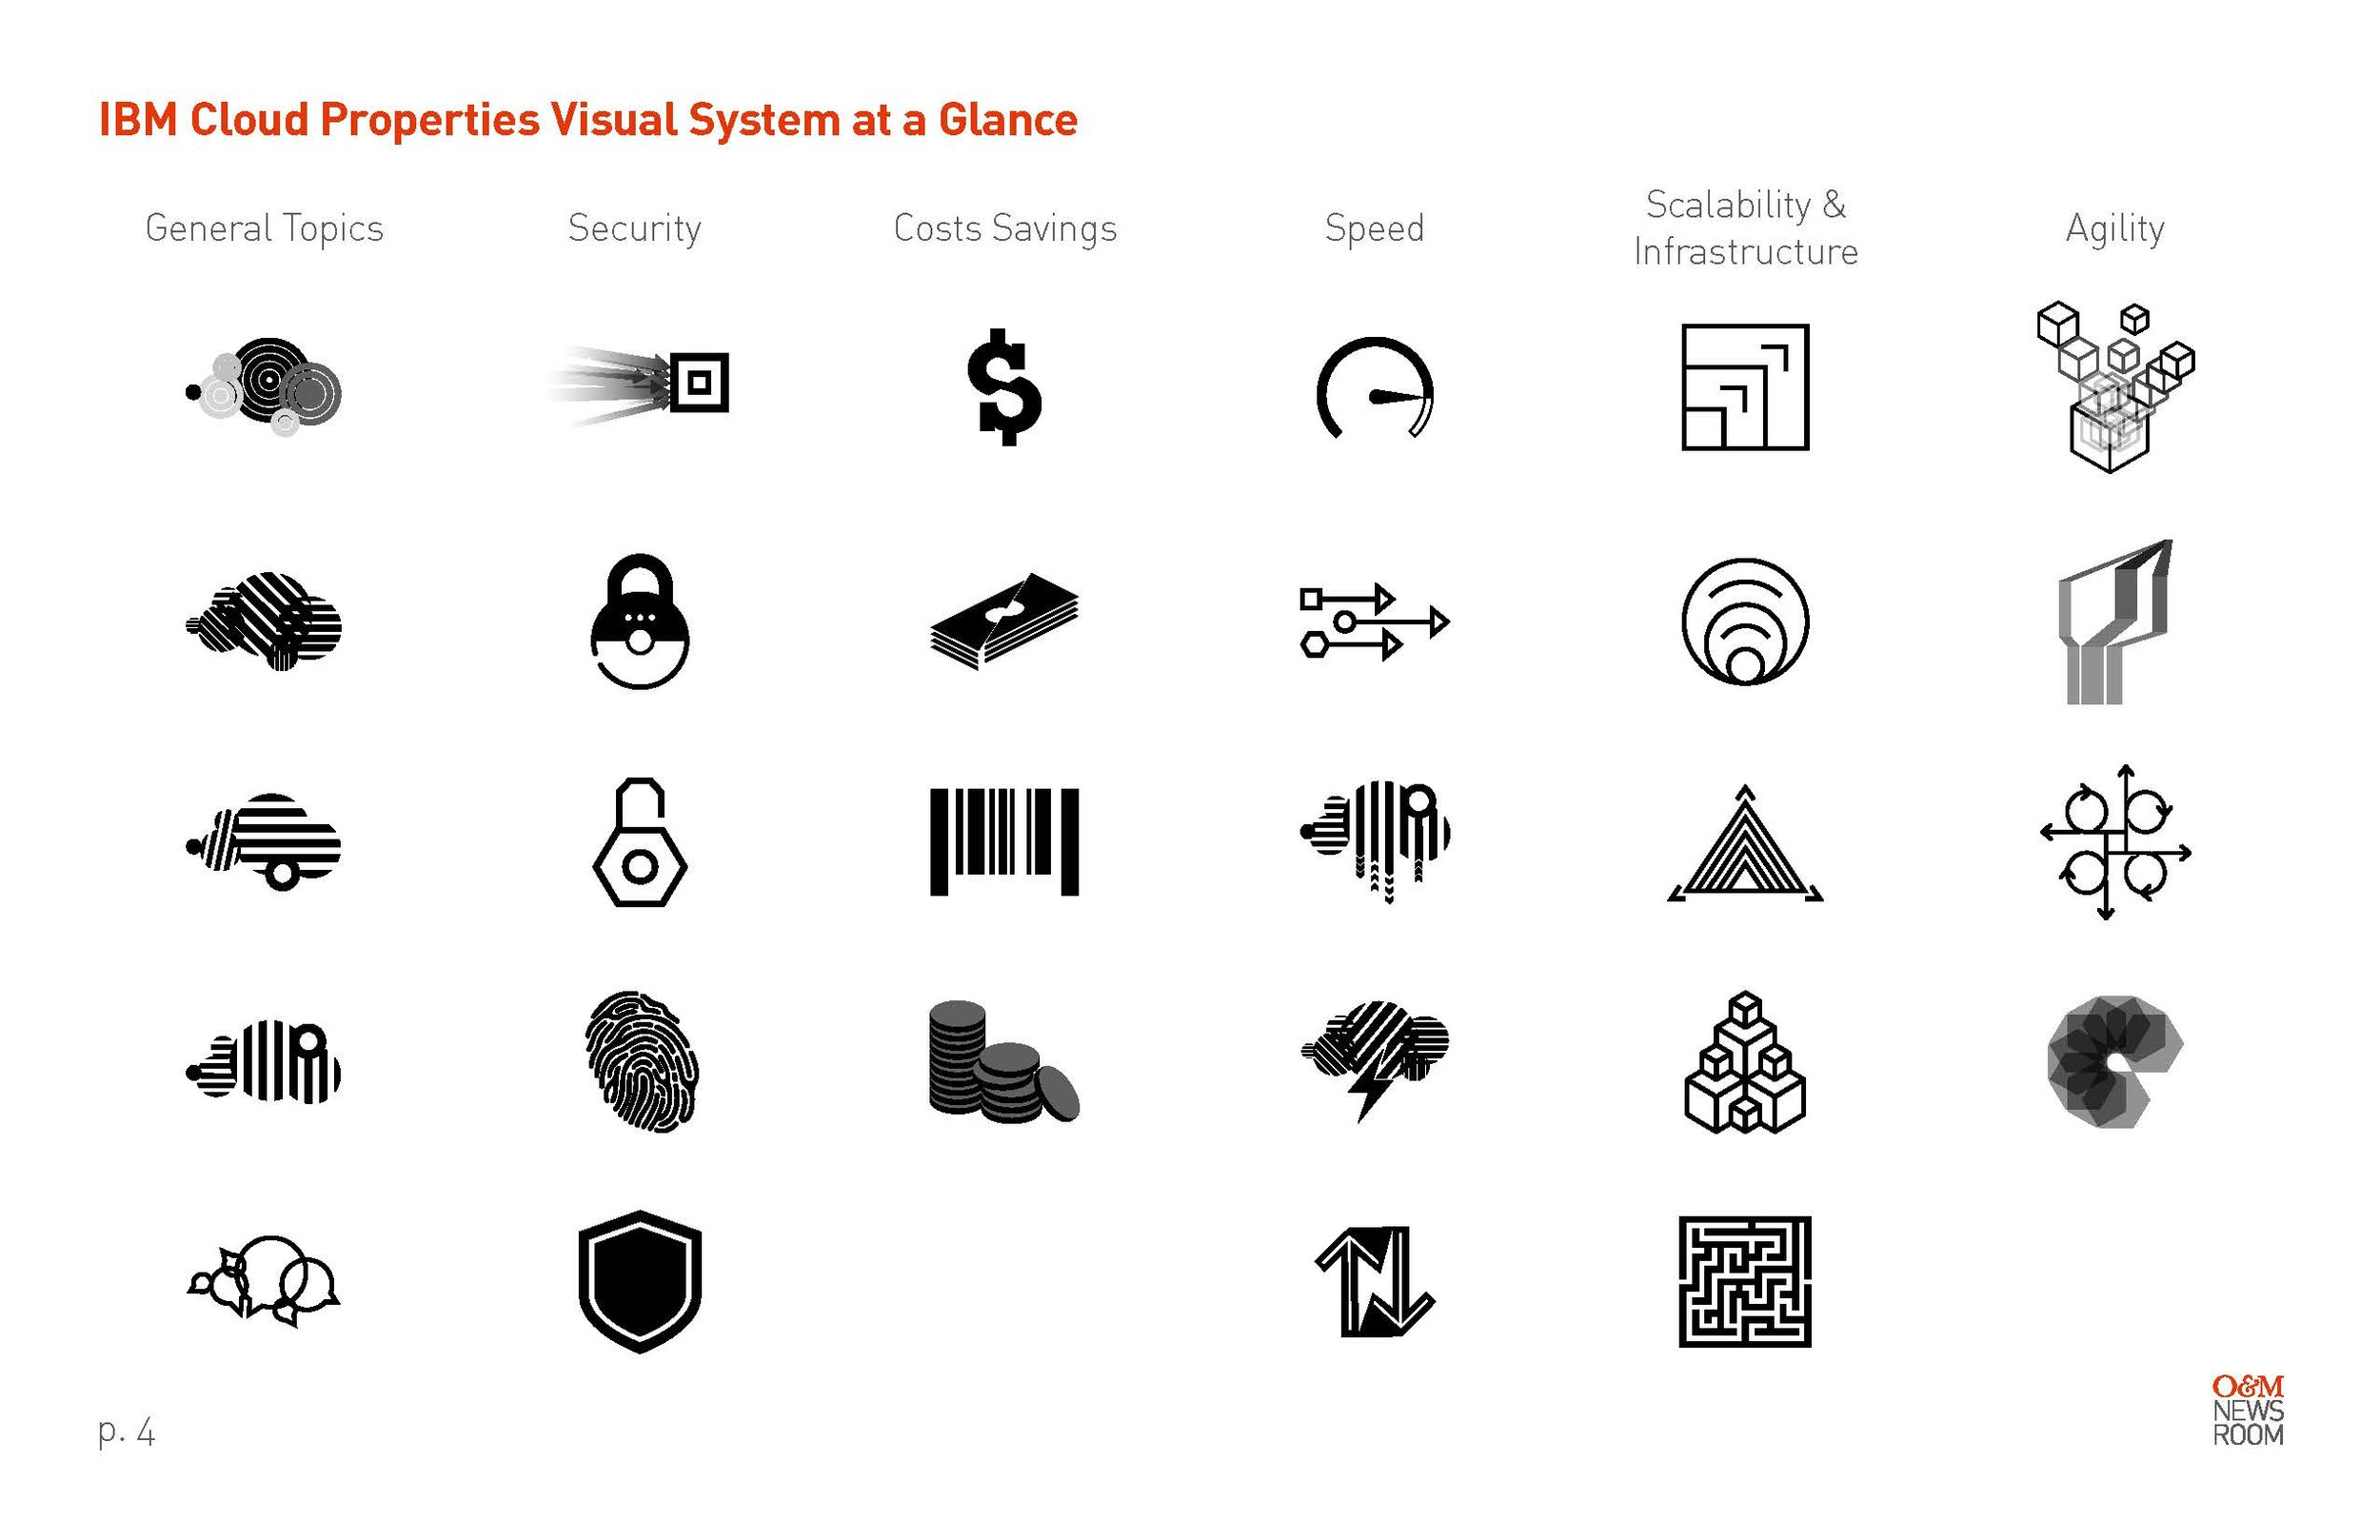 IBMNR_Cloud_Always_On_Social_Visual_Systems_Tone_of_Voice_042815_Page_04.jpg